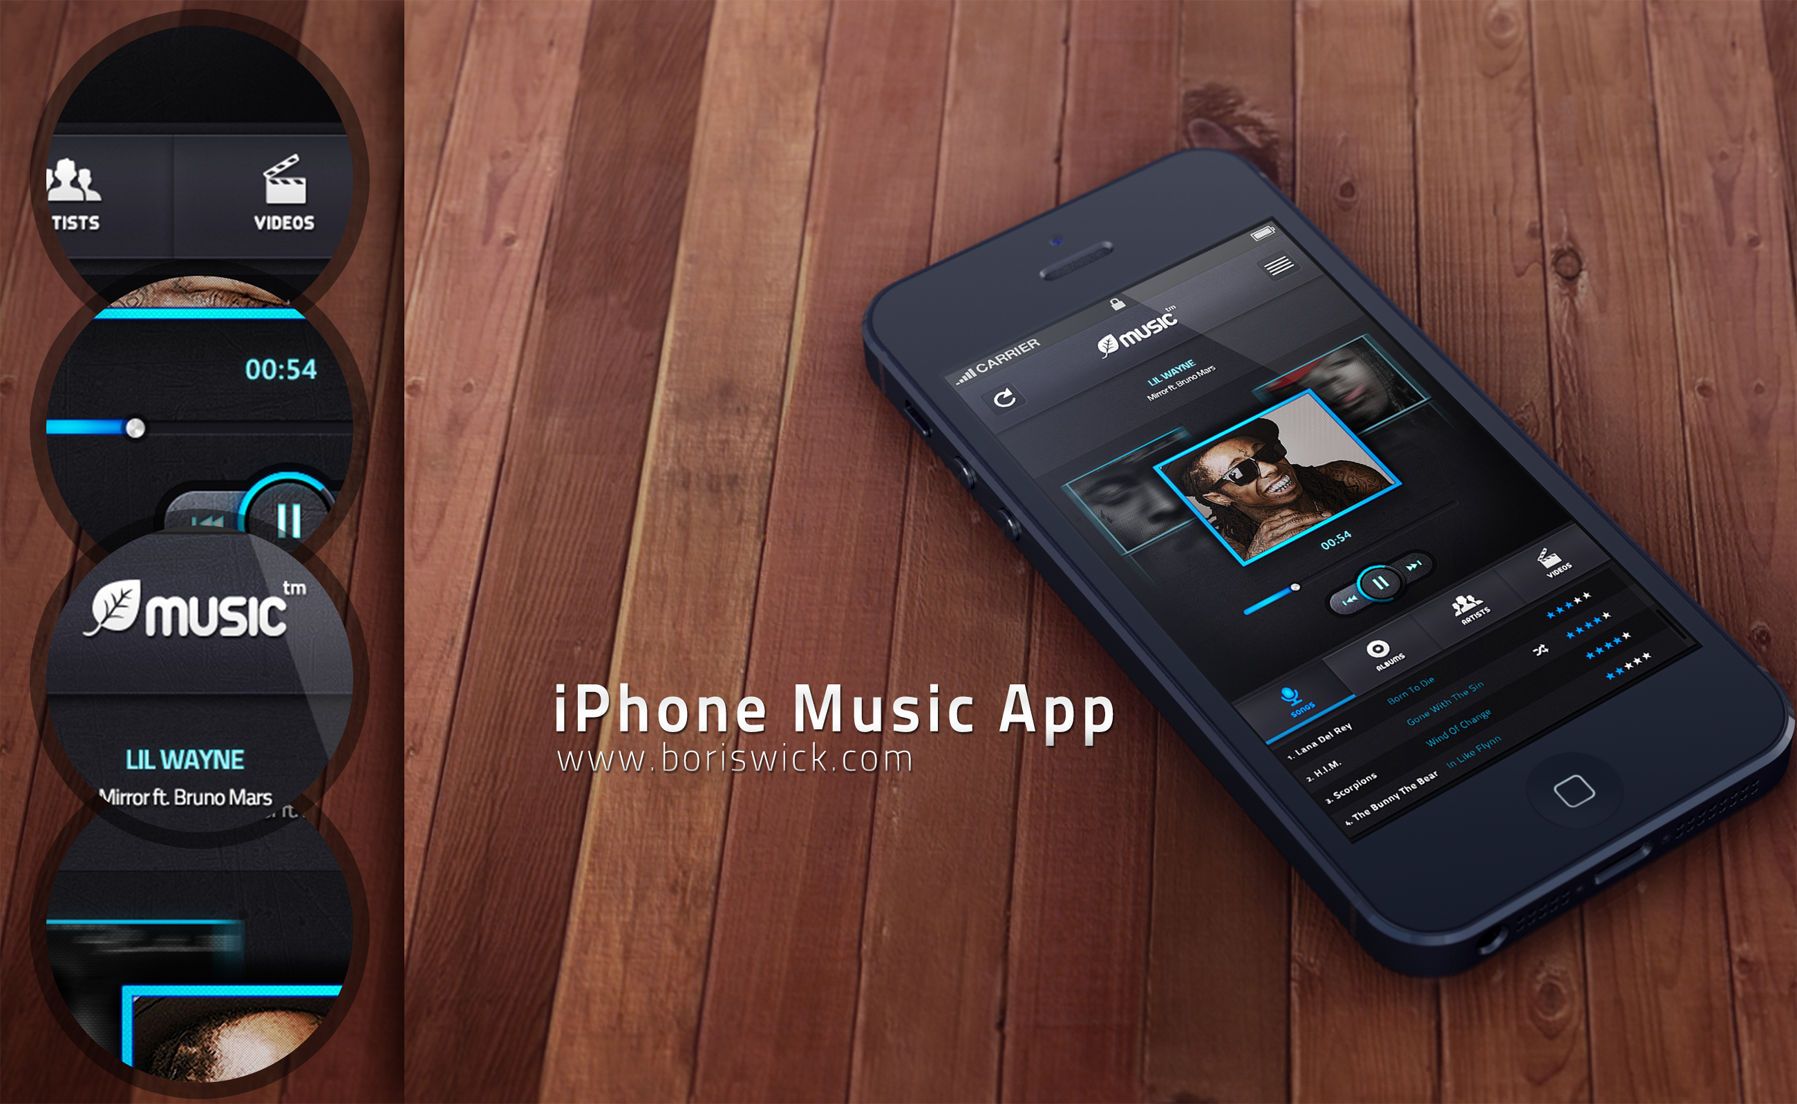 iphone music apps iphone app by boriswick on deviantart 3087